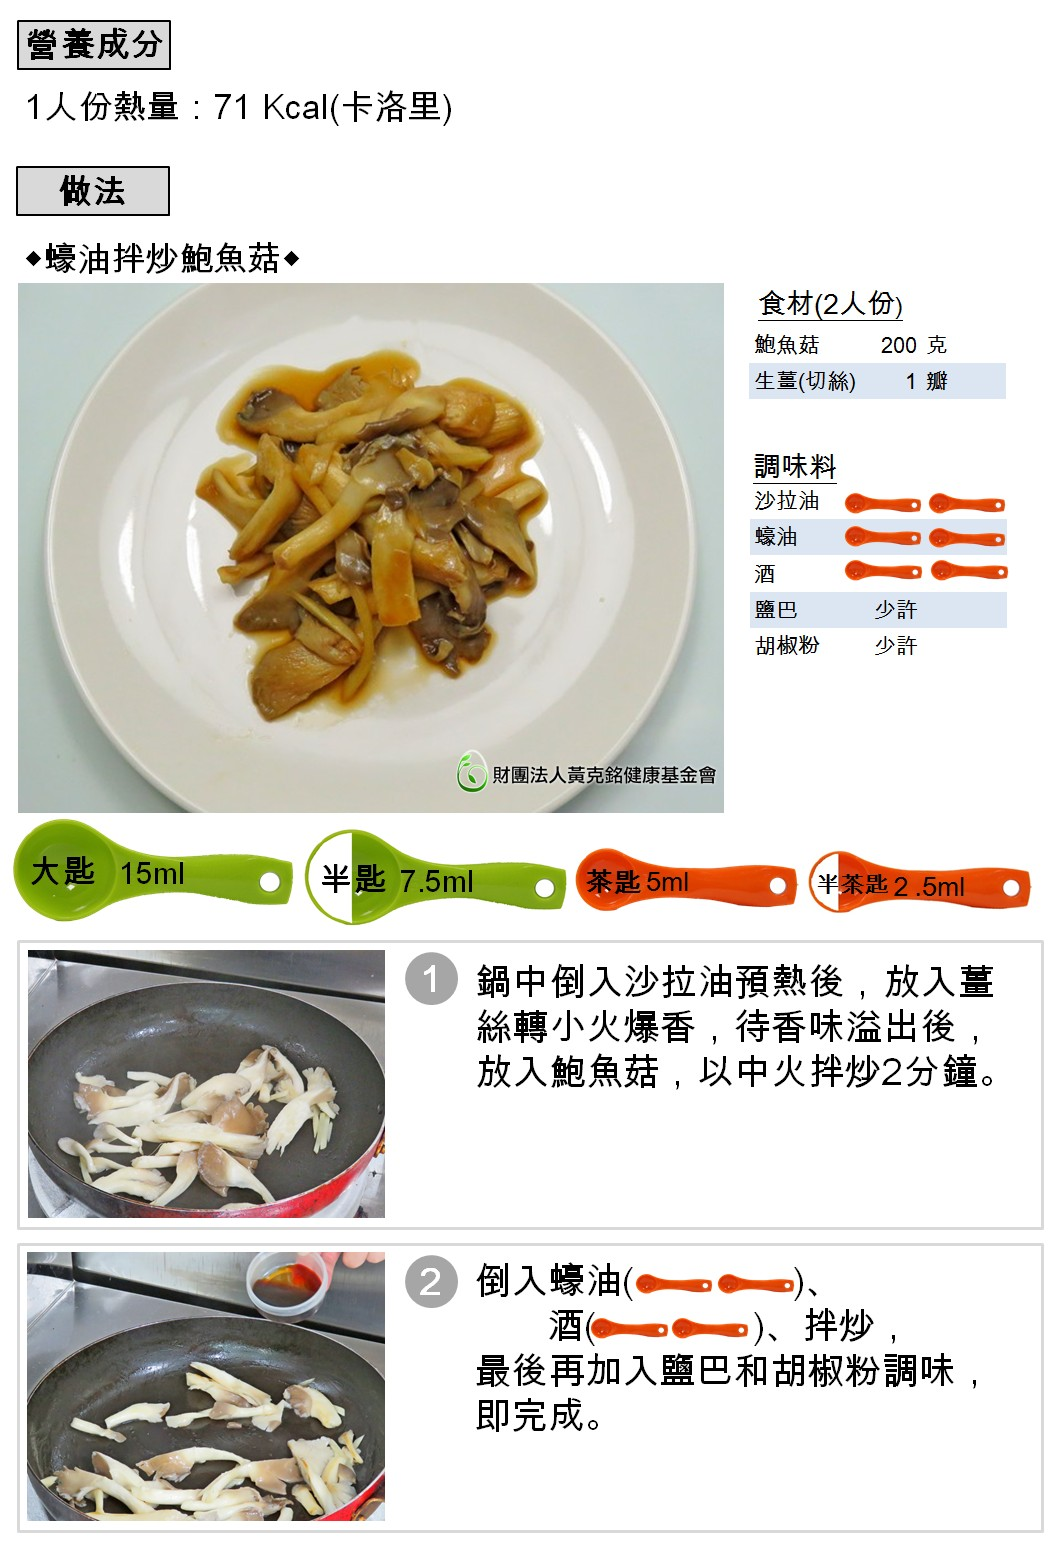 proimages/menu/non-staple/meat-and-vegetables/B310072-2.jpg